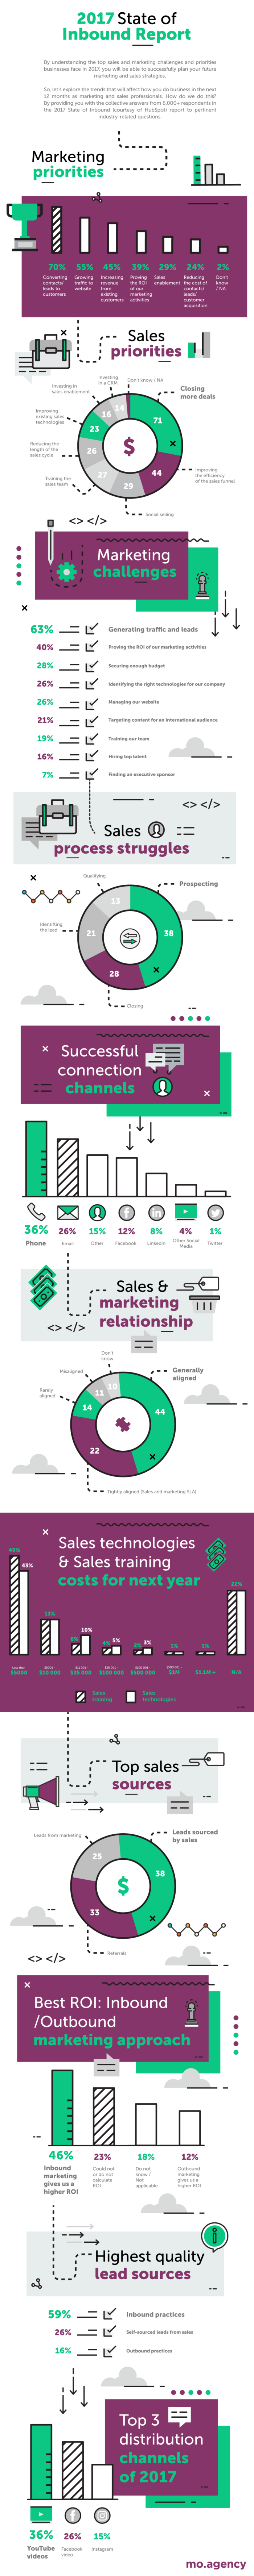 State of Inbound Marketing Infographic 2017 - MO Agency